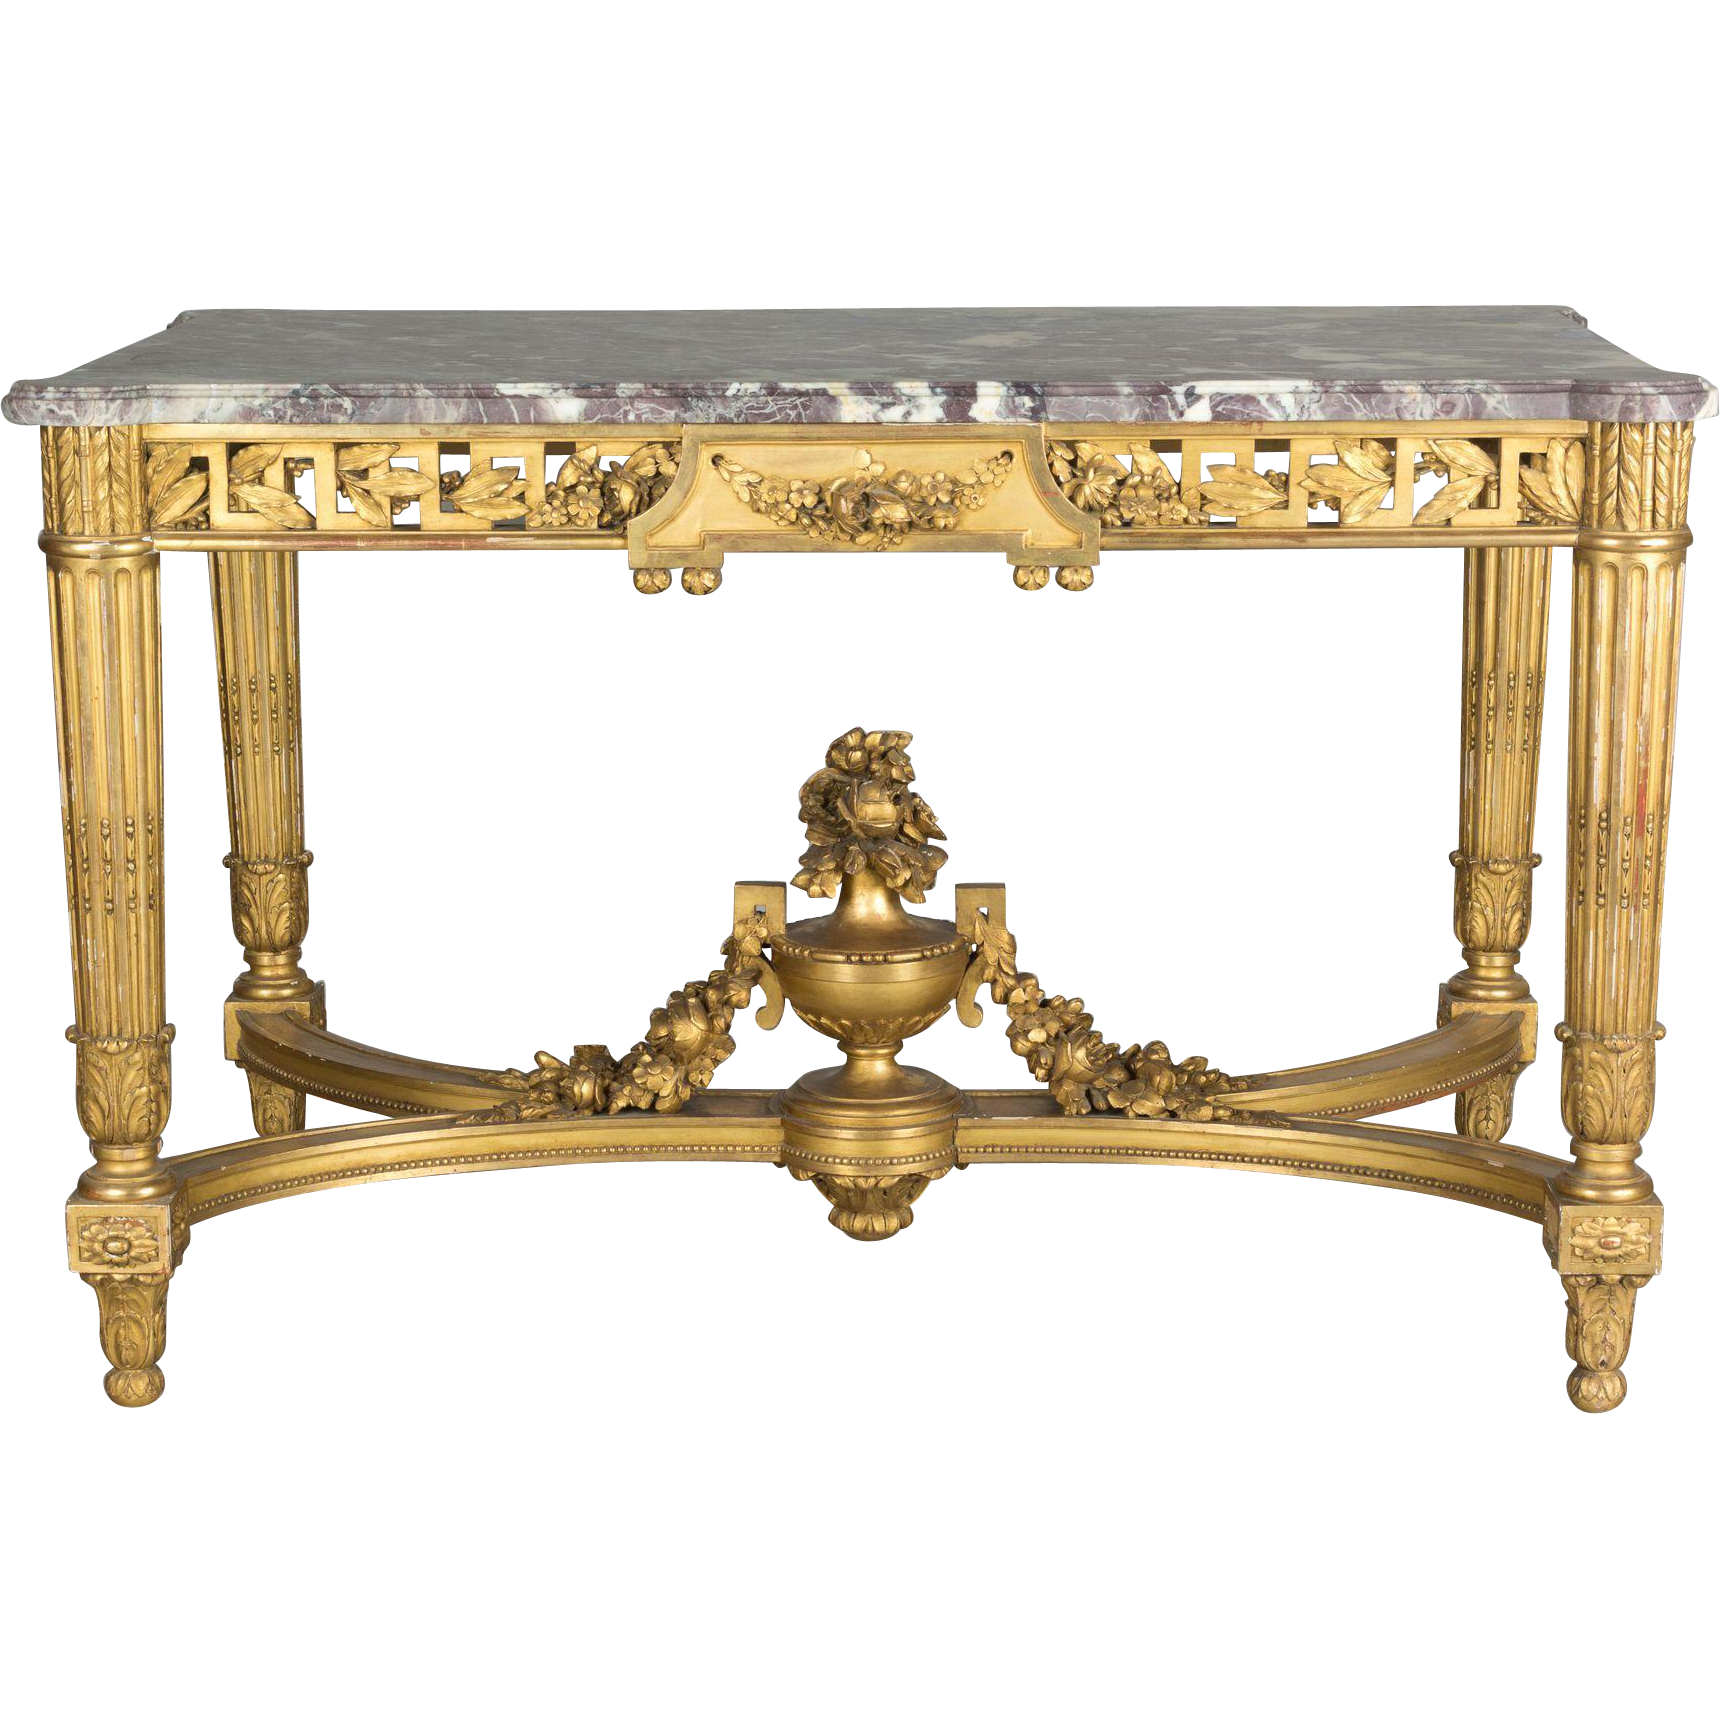 19th century louis xvi style center table from ofleury on for Table th center